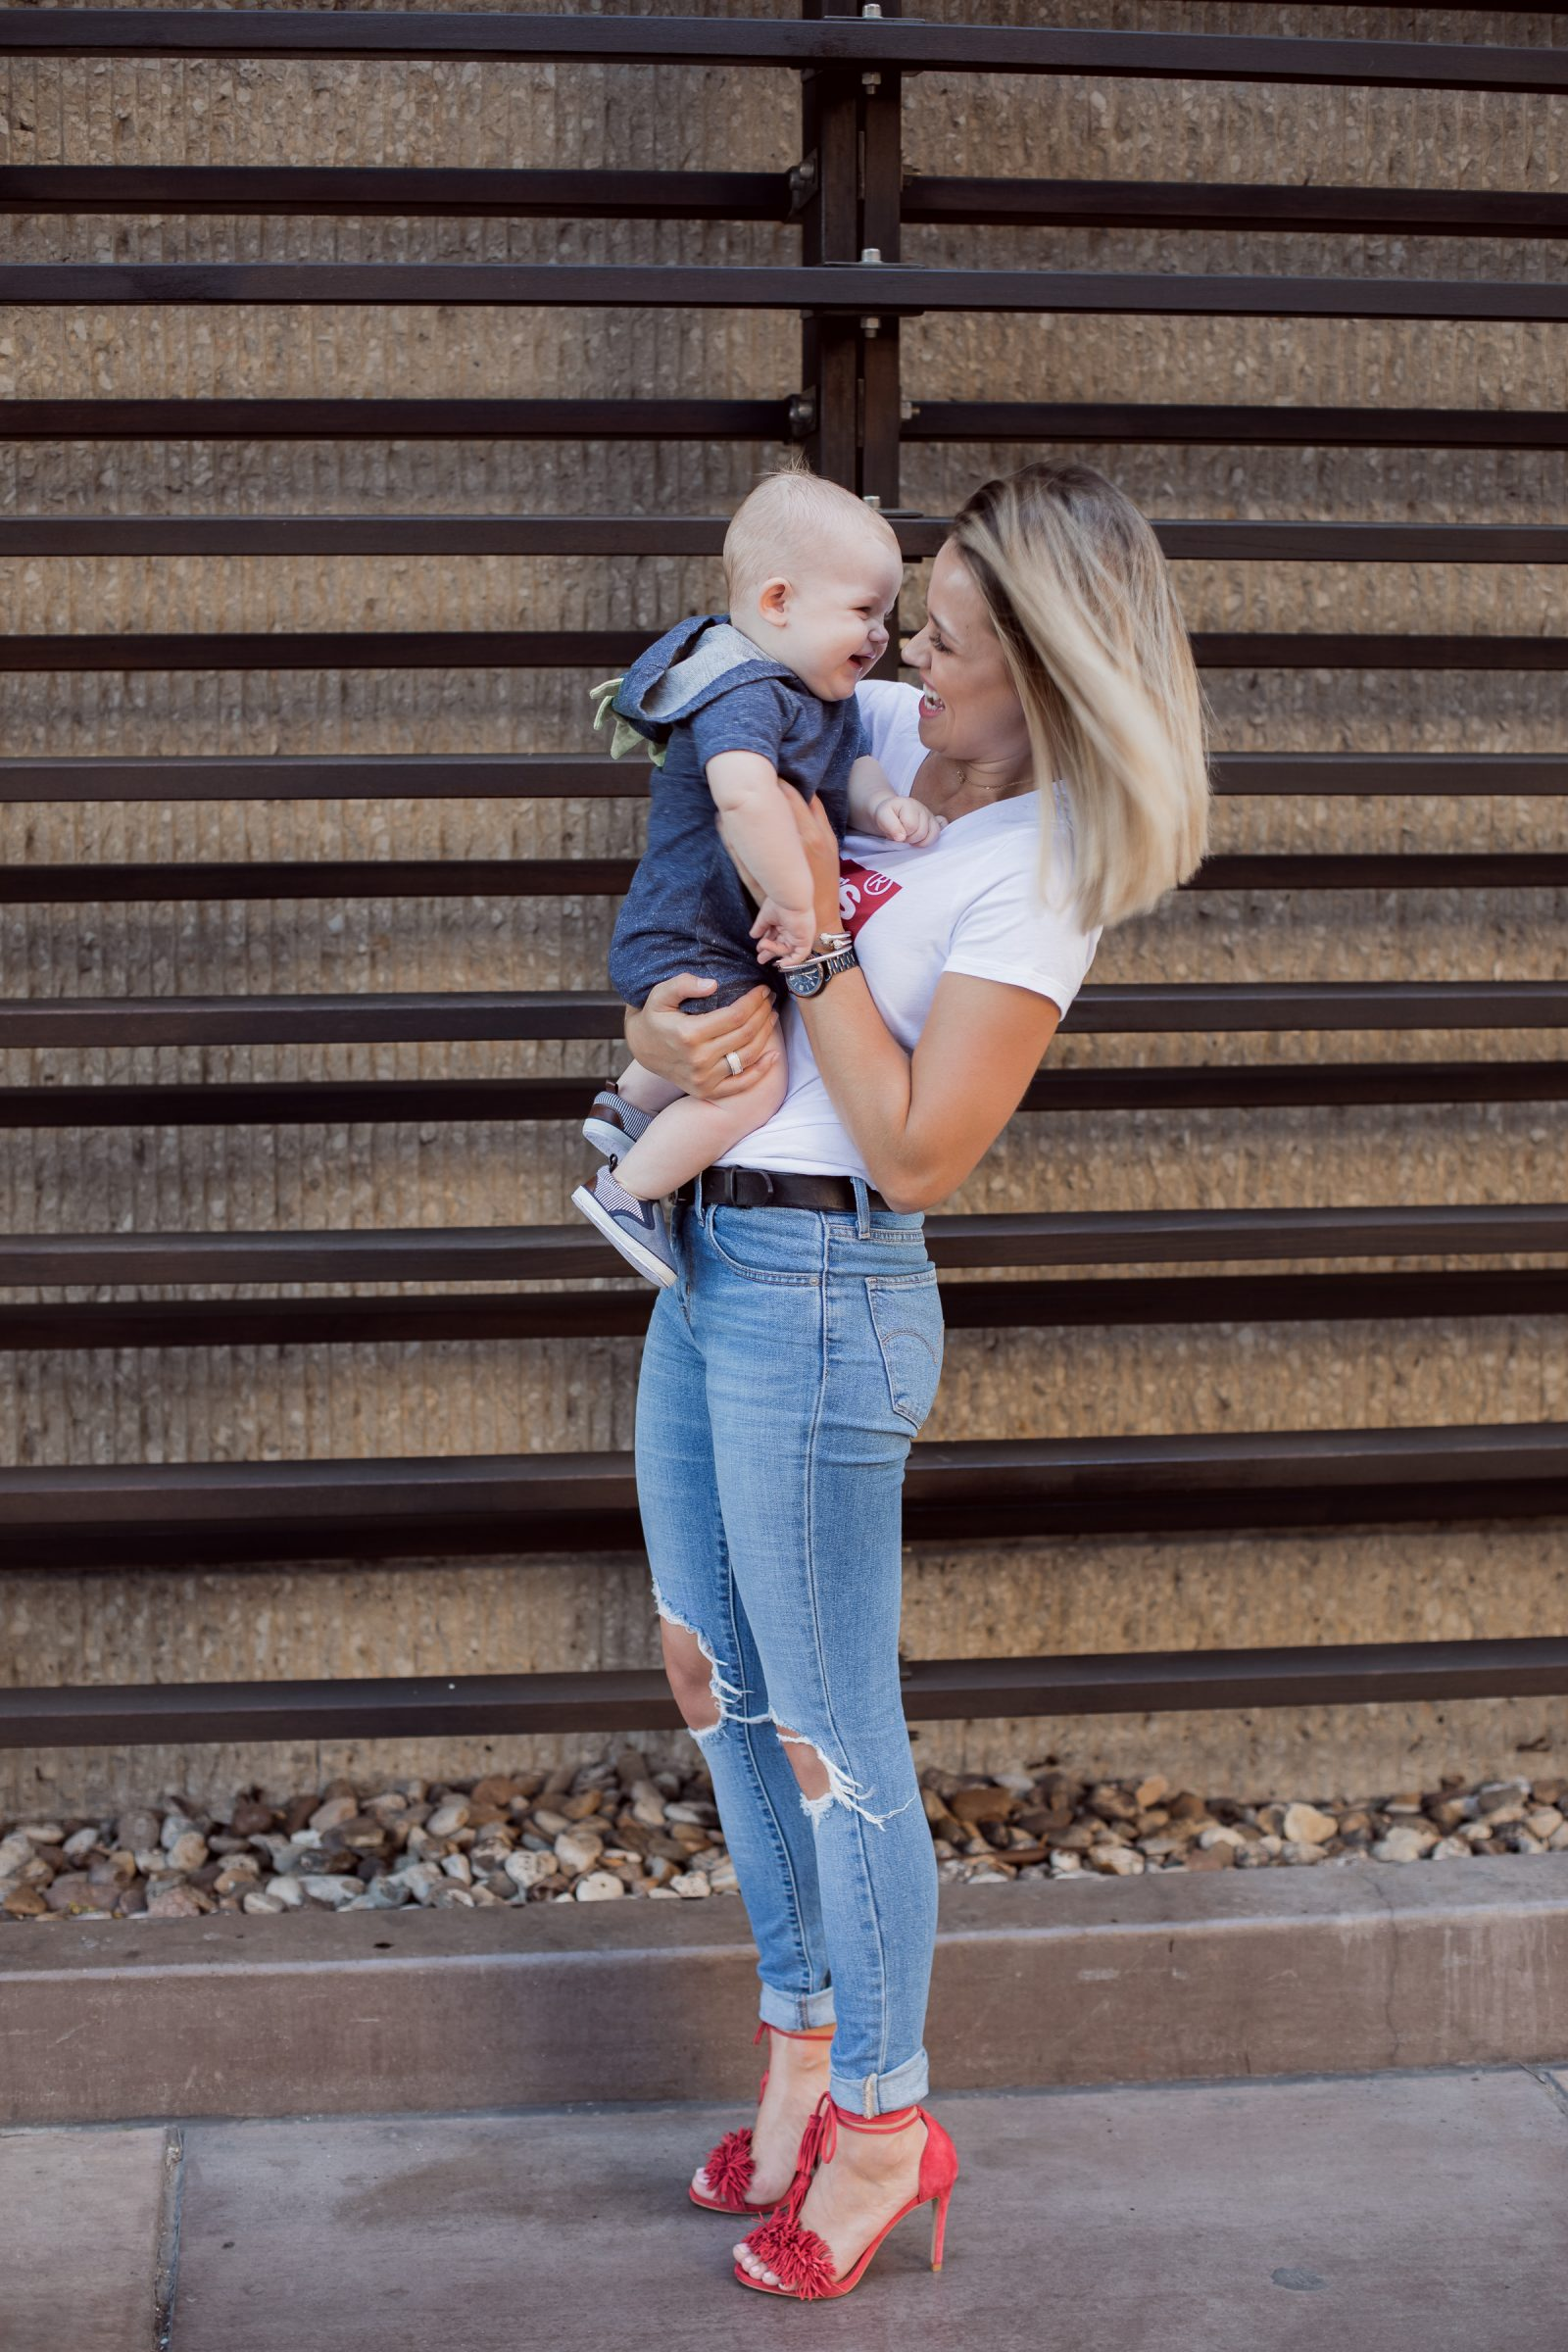 Houston lifestyle blogger Uptown with Elly Brown spills the beans on being a Boy Mom, and how life has changed. Click here for more!